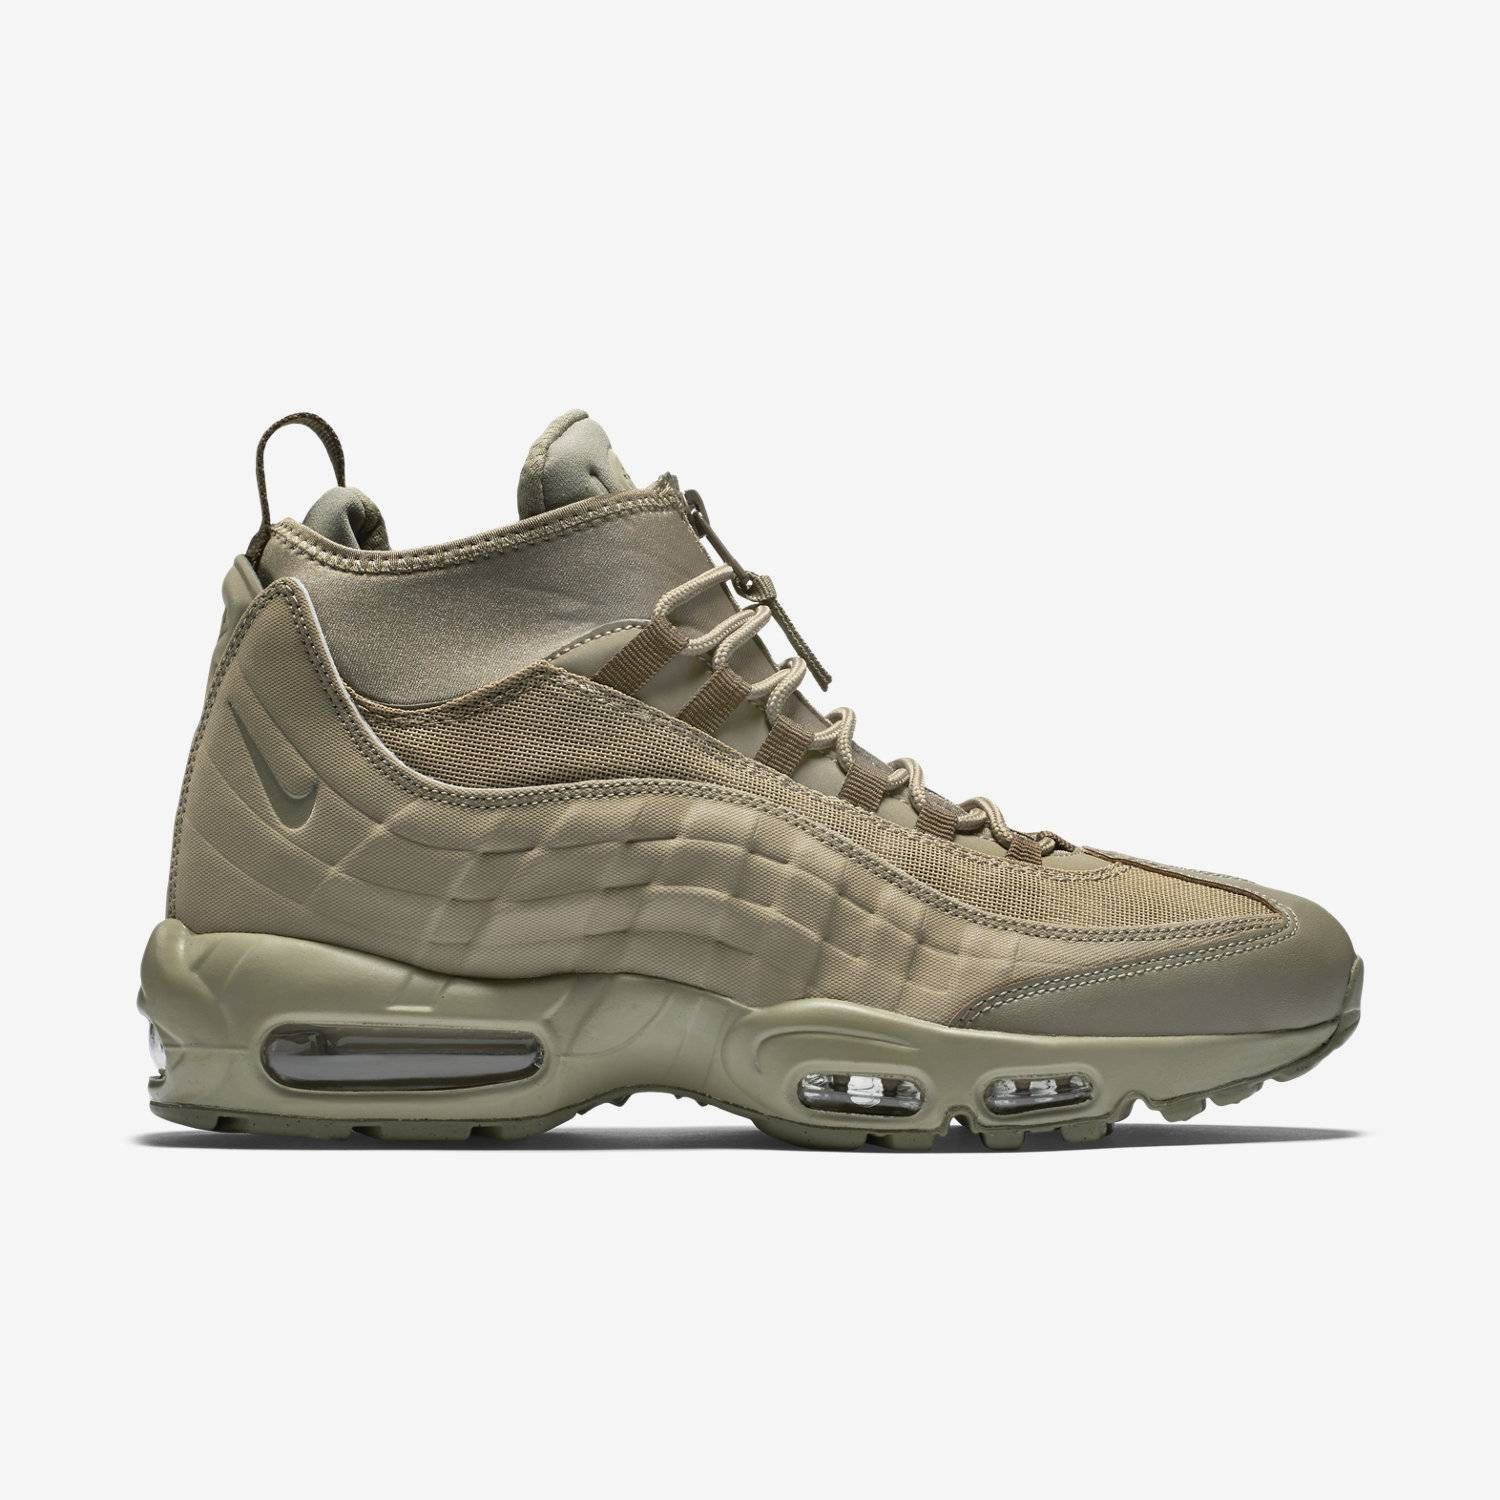 best website 4e085 f75e4 ... promo code for air max 95 sneakerboot nike 806809 300 goat 6c7d1 71368